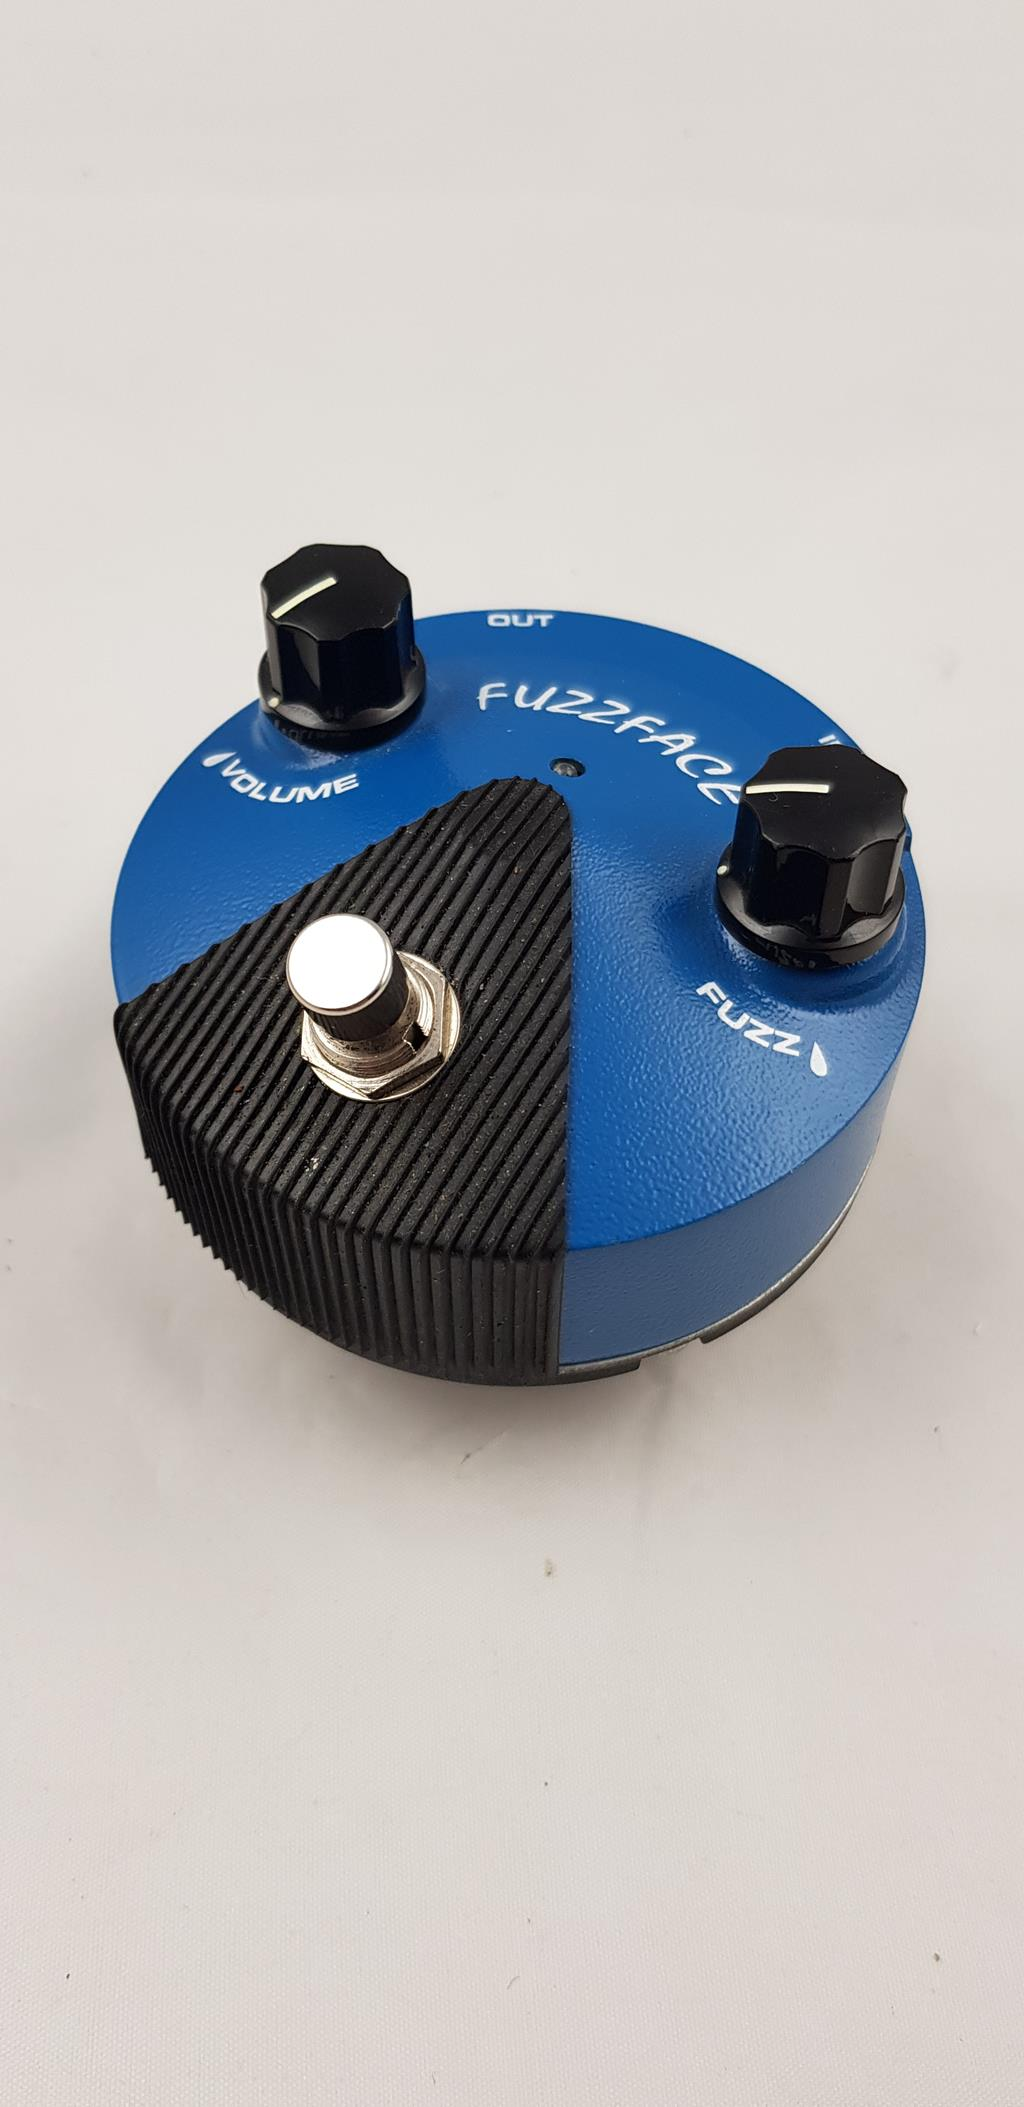 DUNLOP FFM1 SILICON FUZZ MINI BLUE .